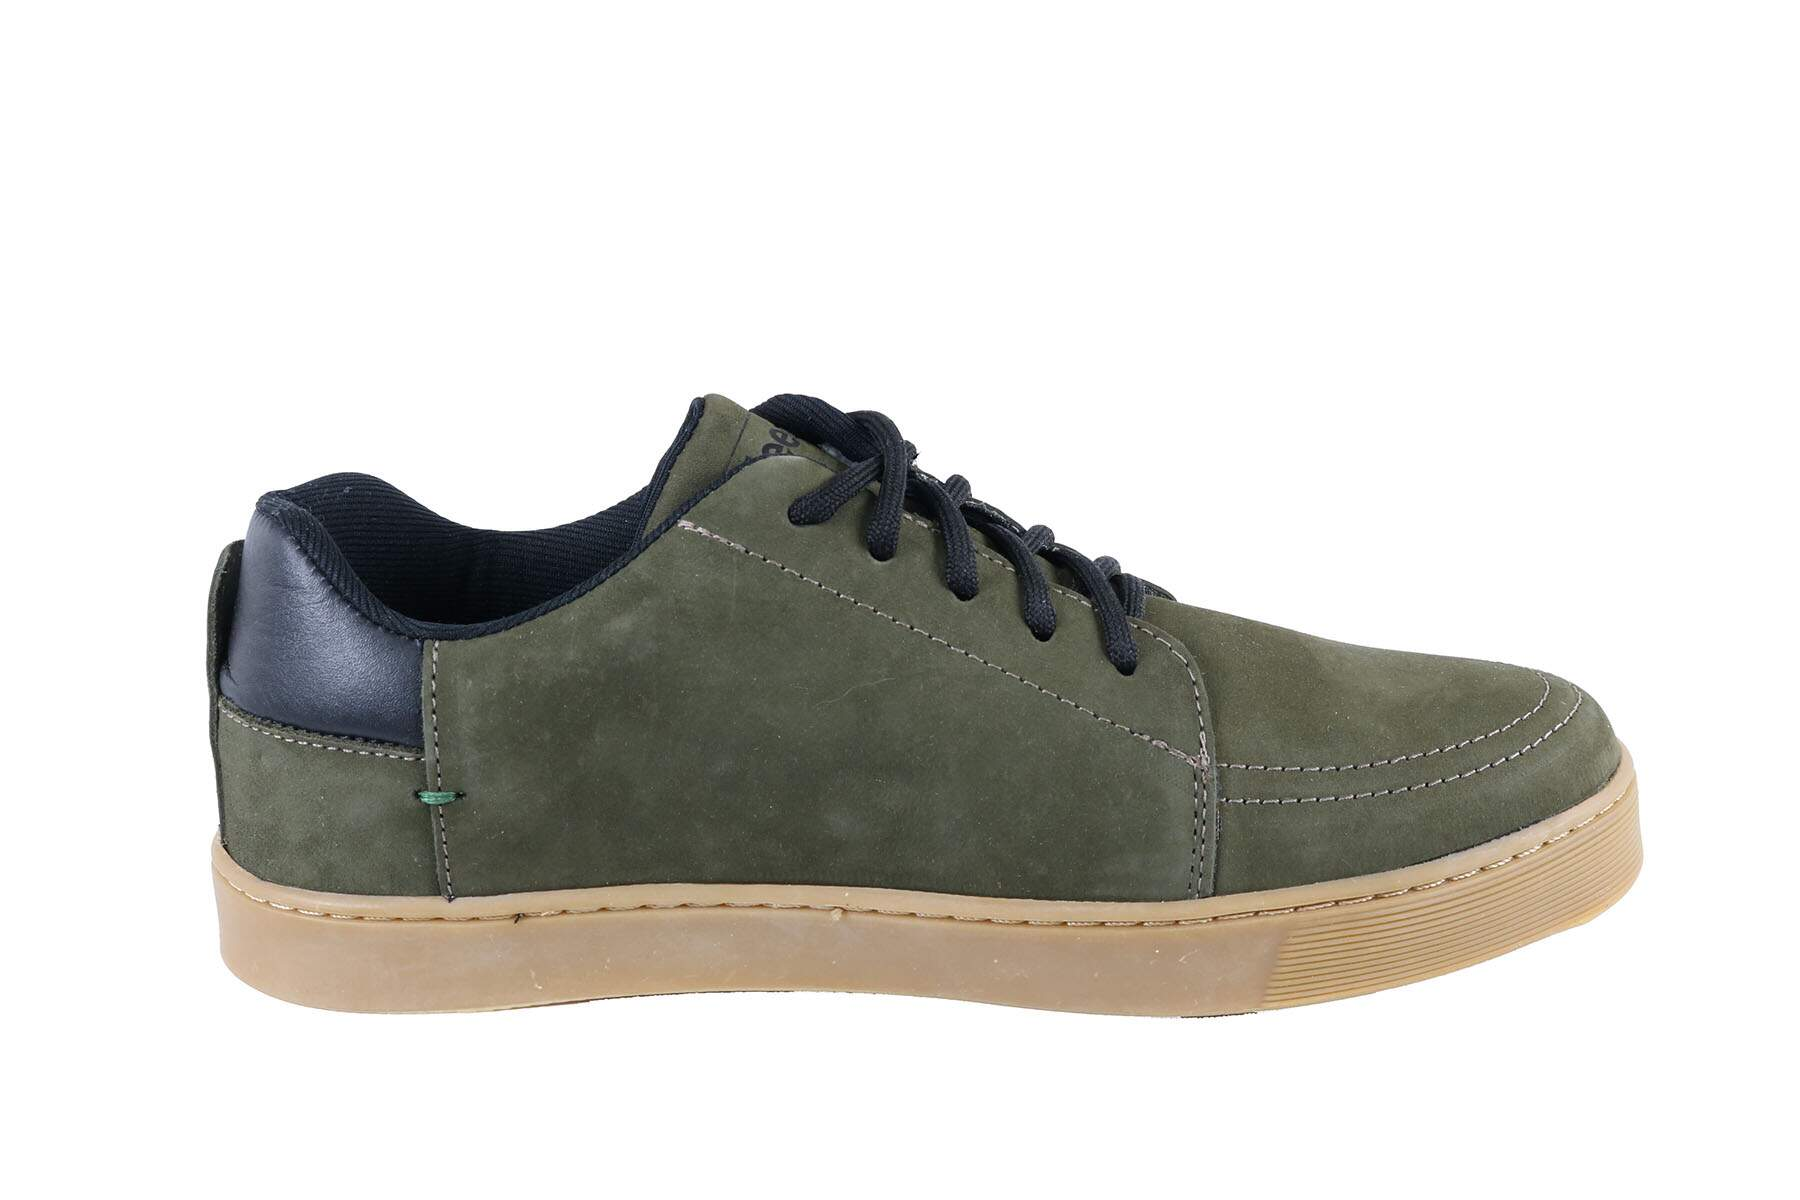 Tênis Wrangler - Military Green - Casual Low - Verde Military